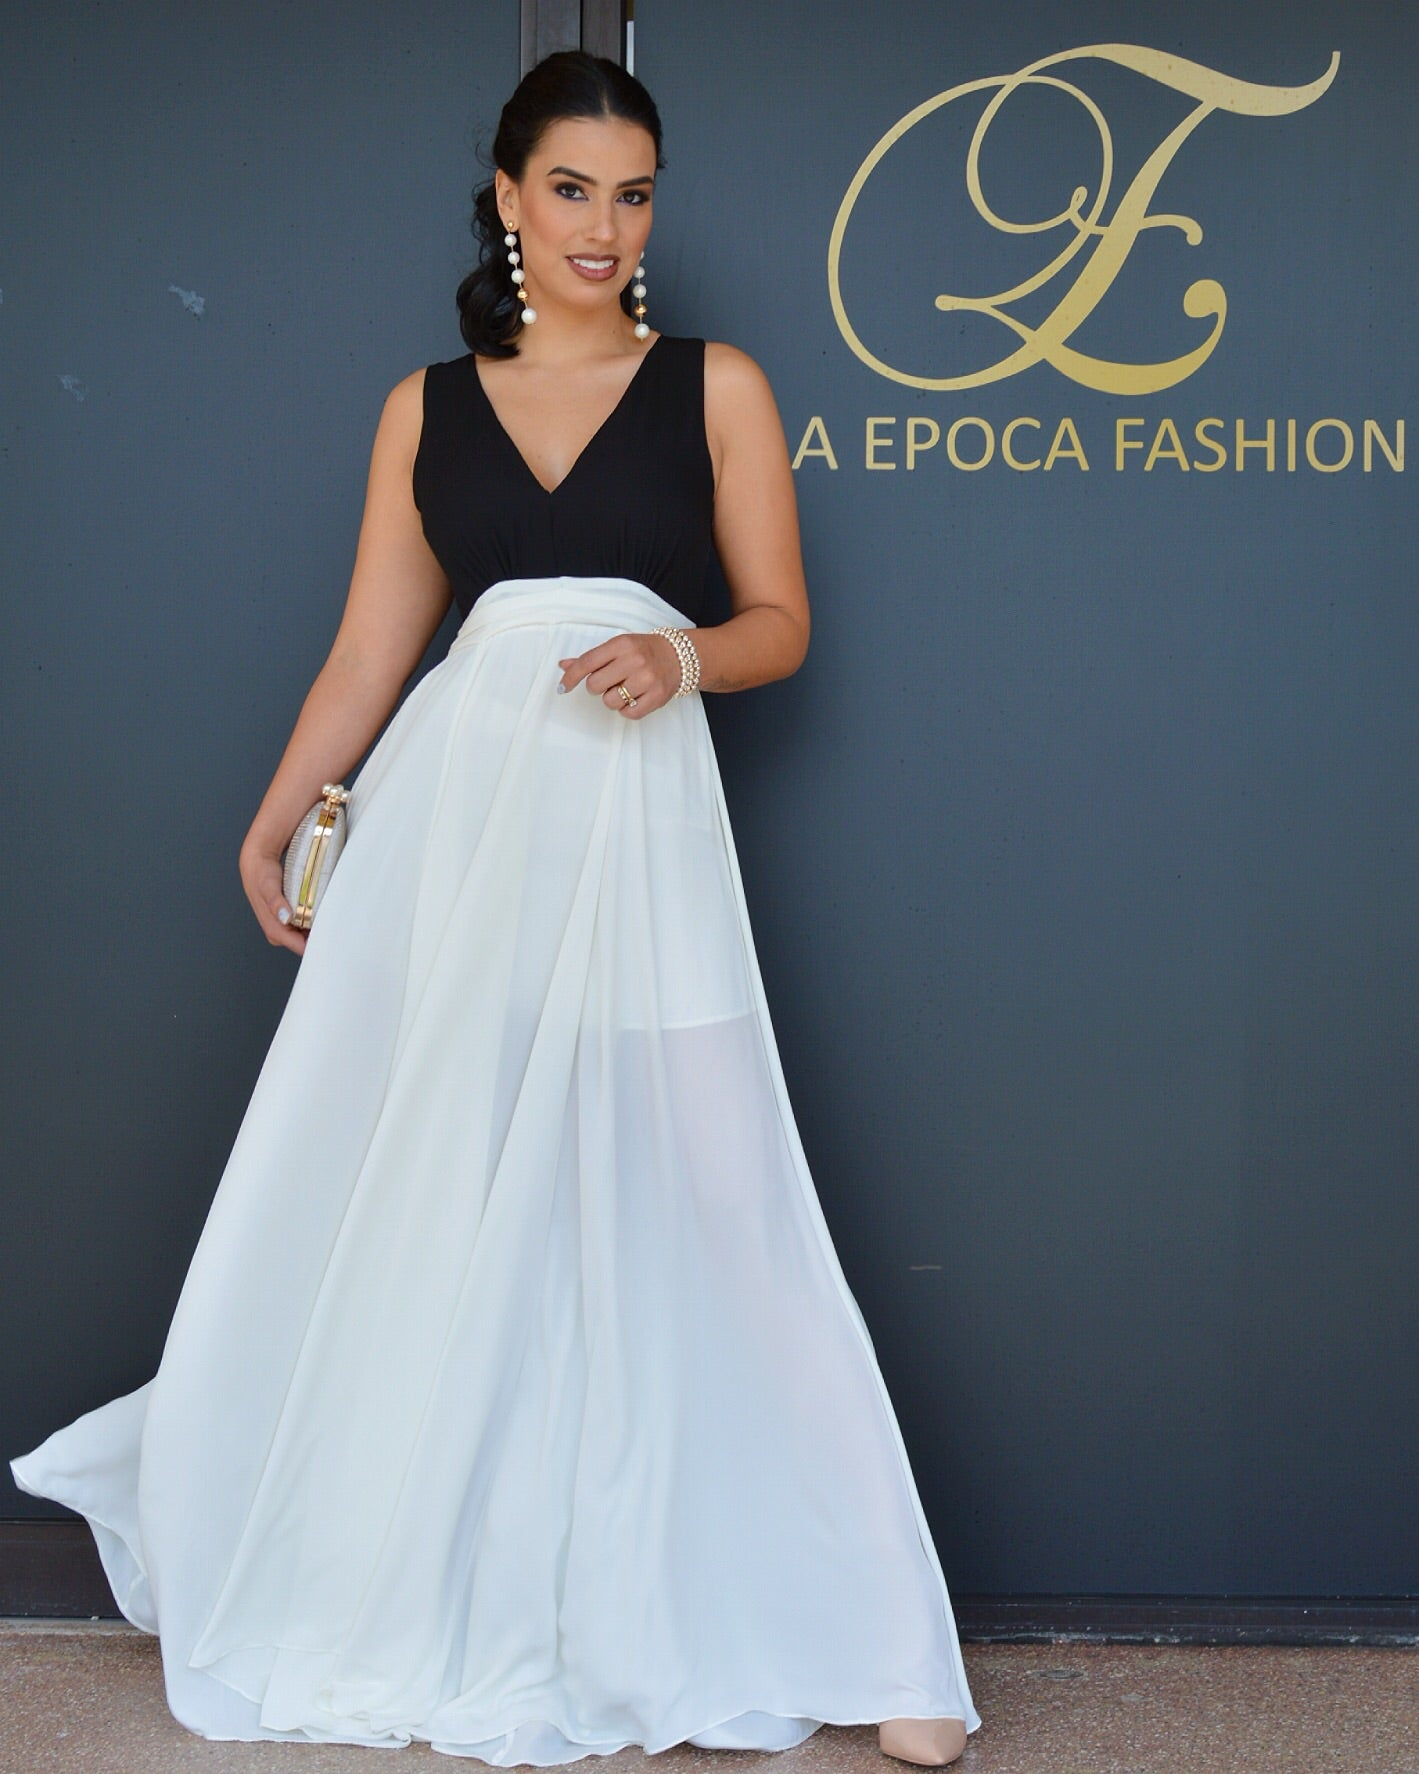 She just Can't get Enough Glam Gown Dress - La Epoca Fashion